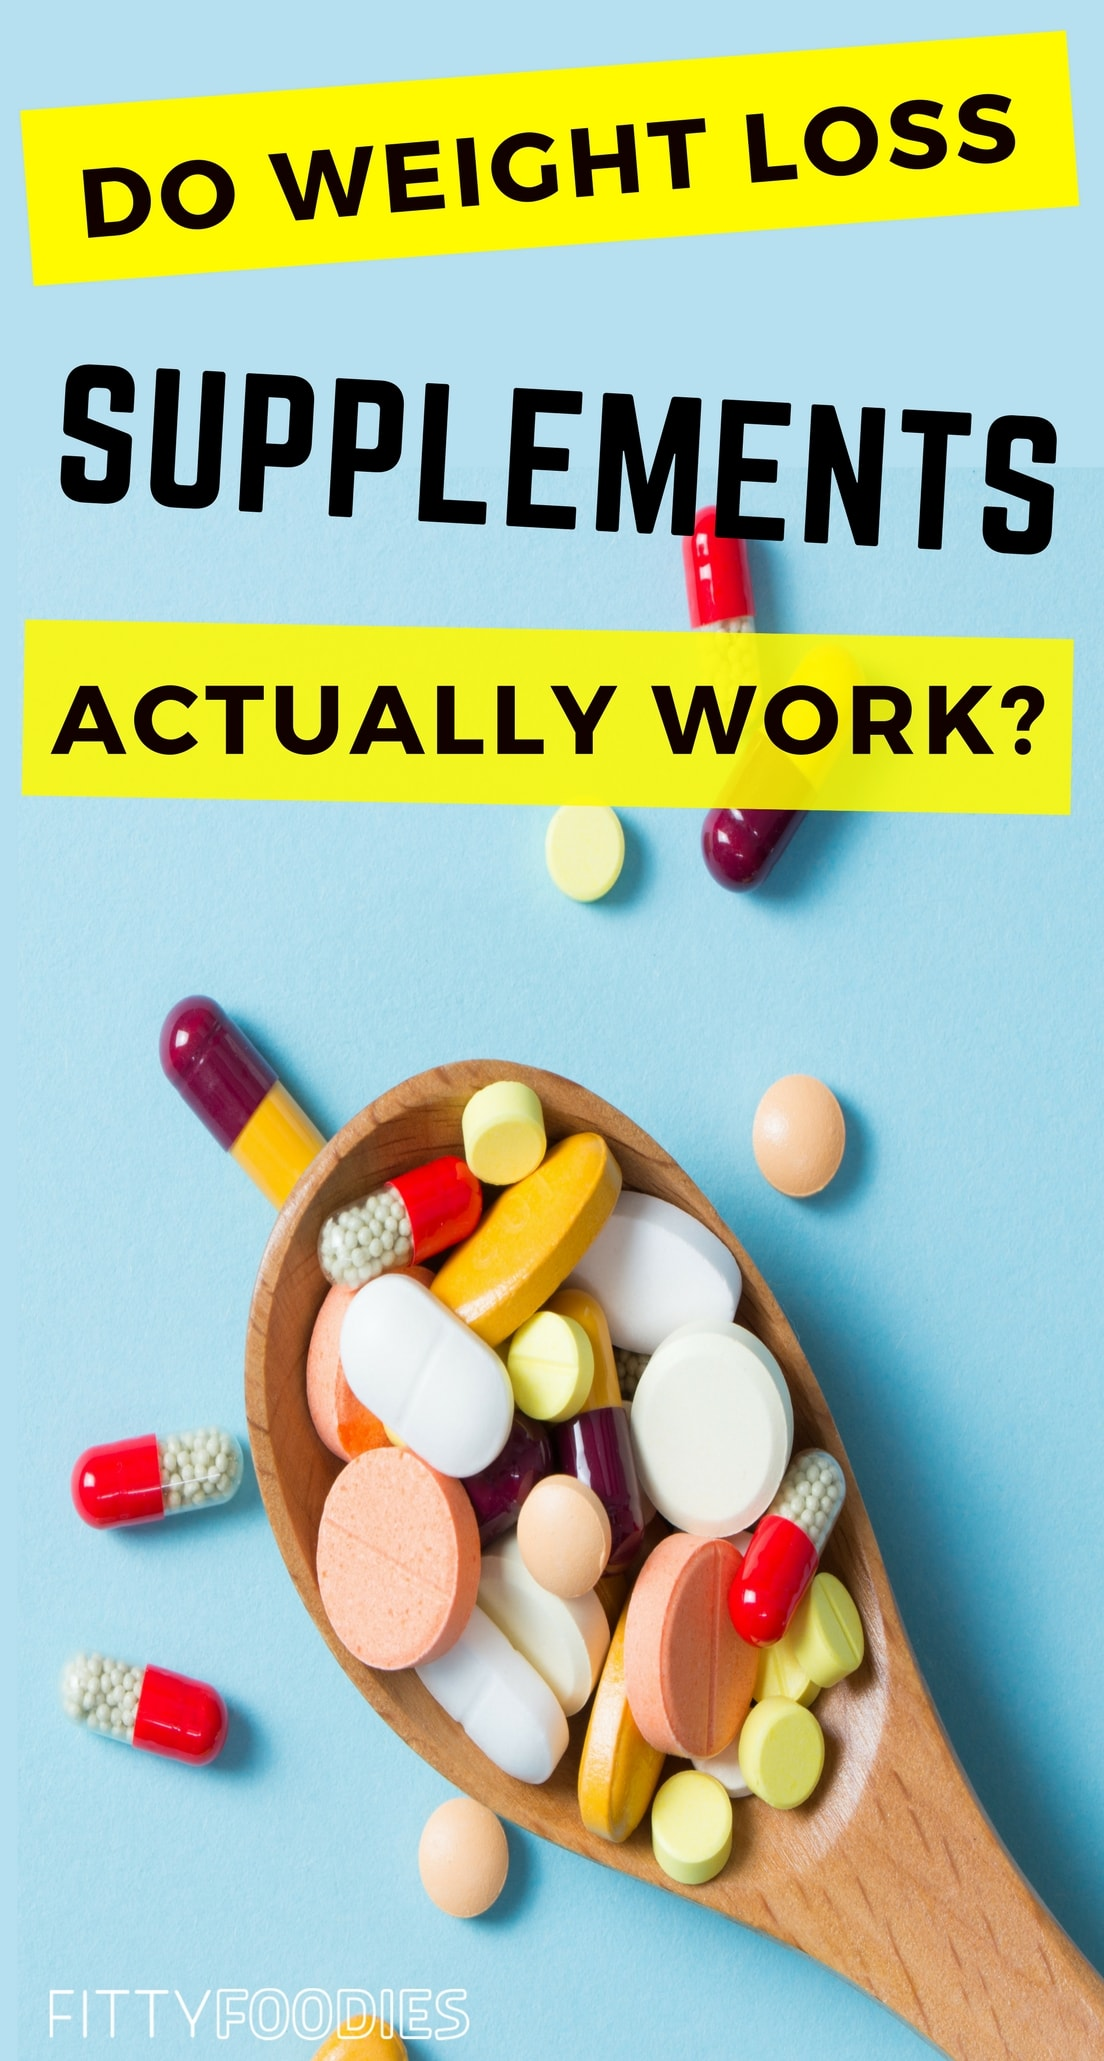 Do Weight Loss Supplements Actually Work?